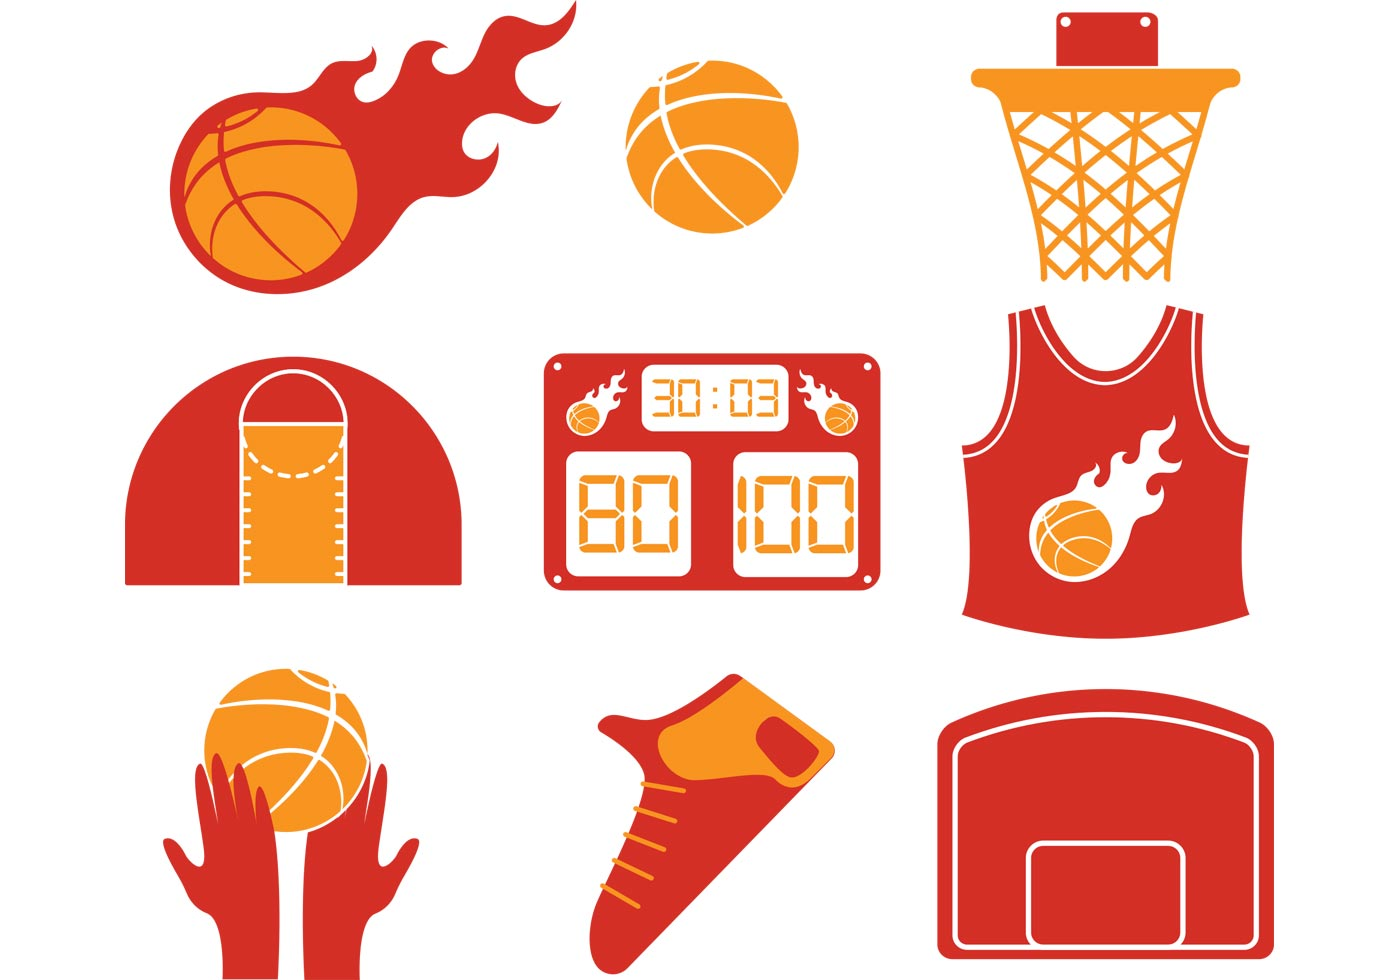 hot basketball vector icons download free vector art clipart basketball court players basketball court clipart free printable